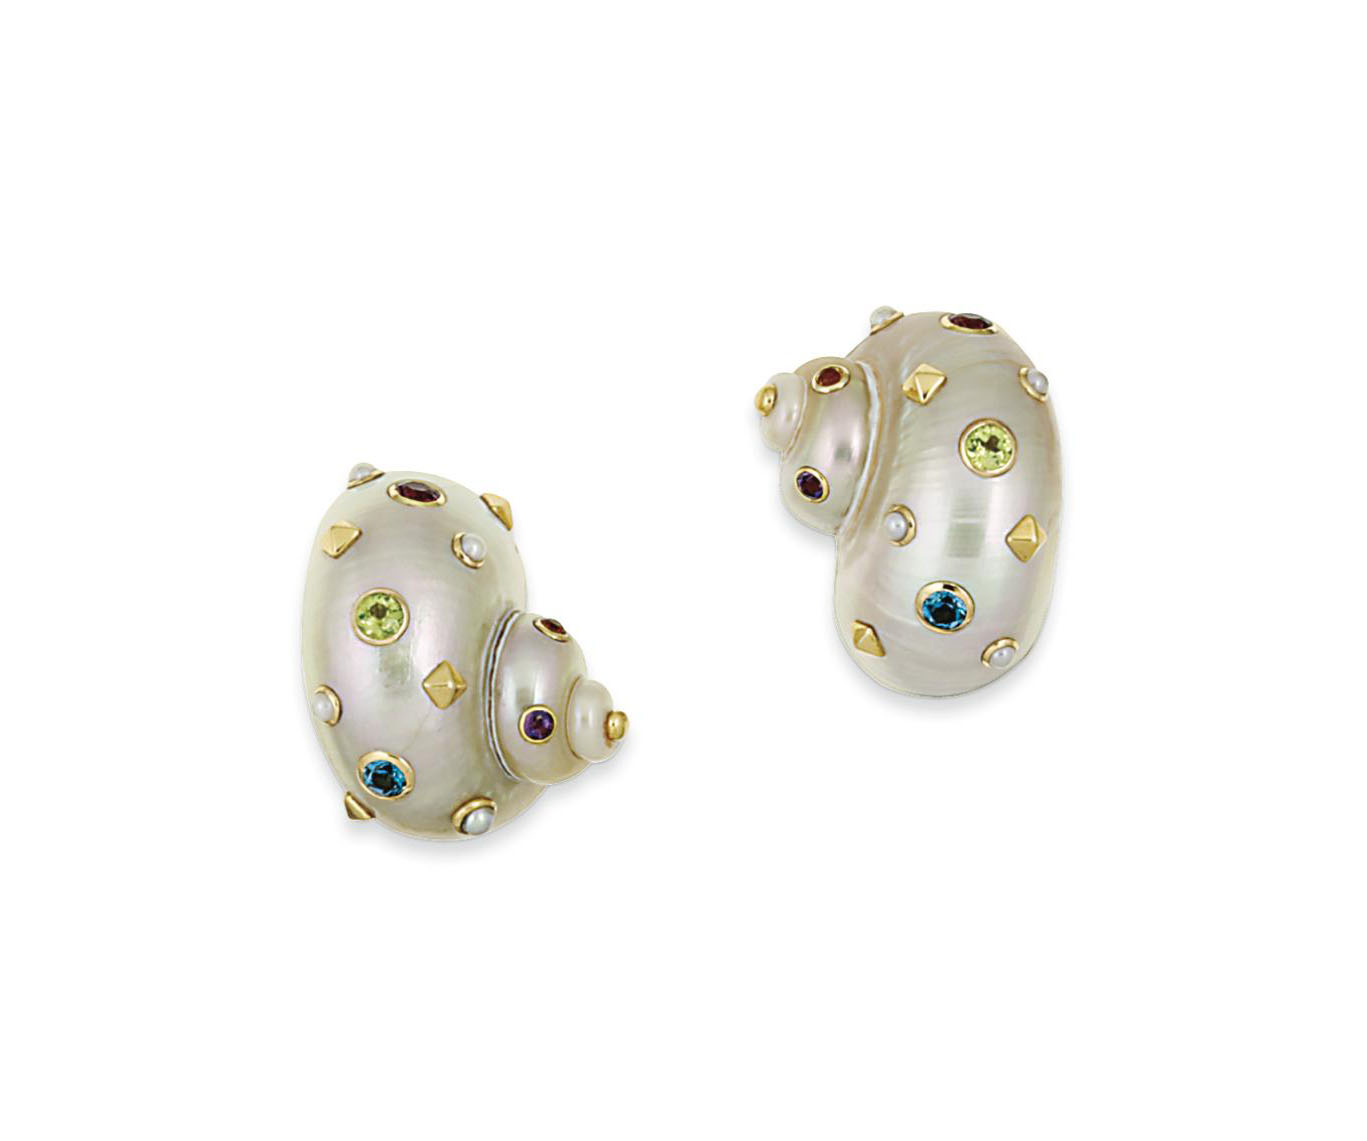 A pair of shell and gem earrings, by Trianon